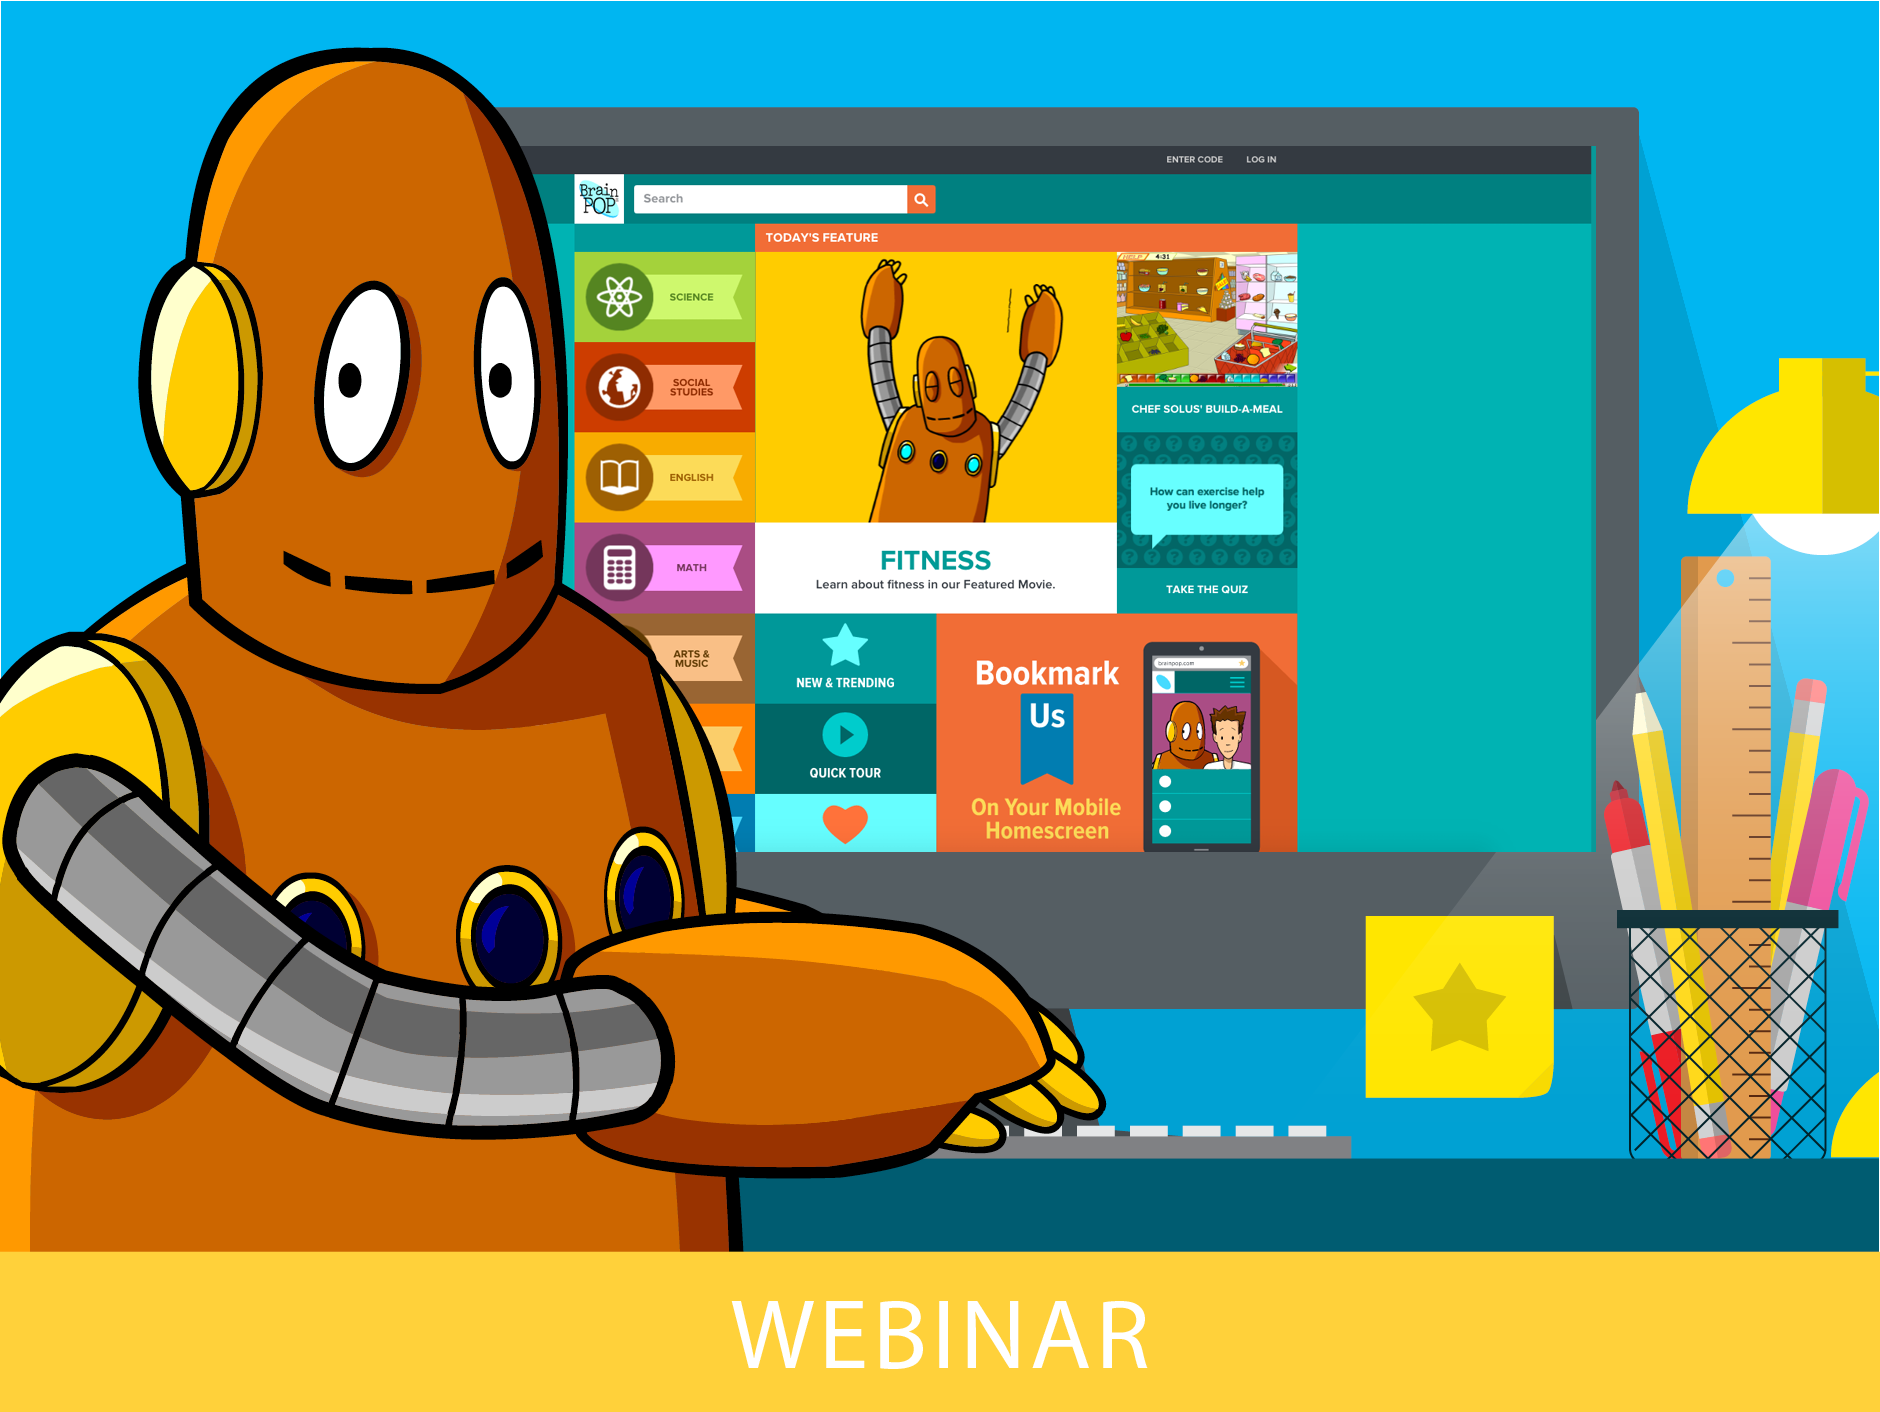 BrainPOP Overview (2016 Science Topics)